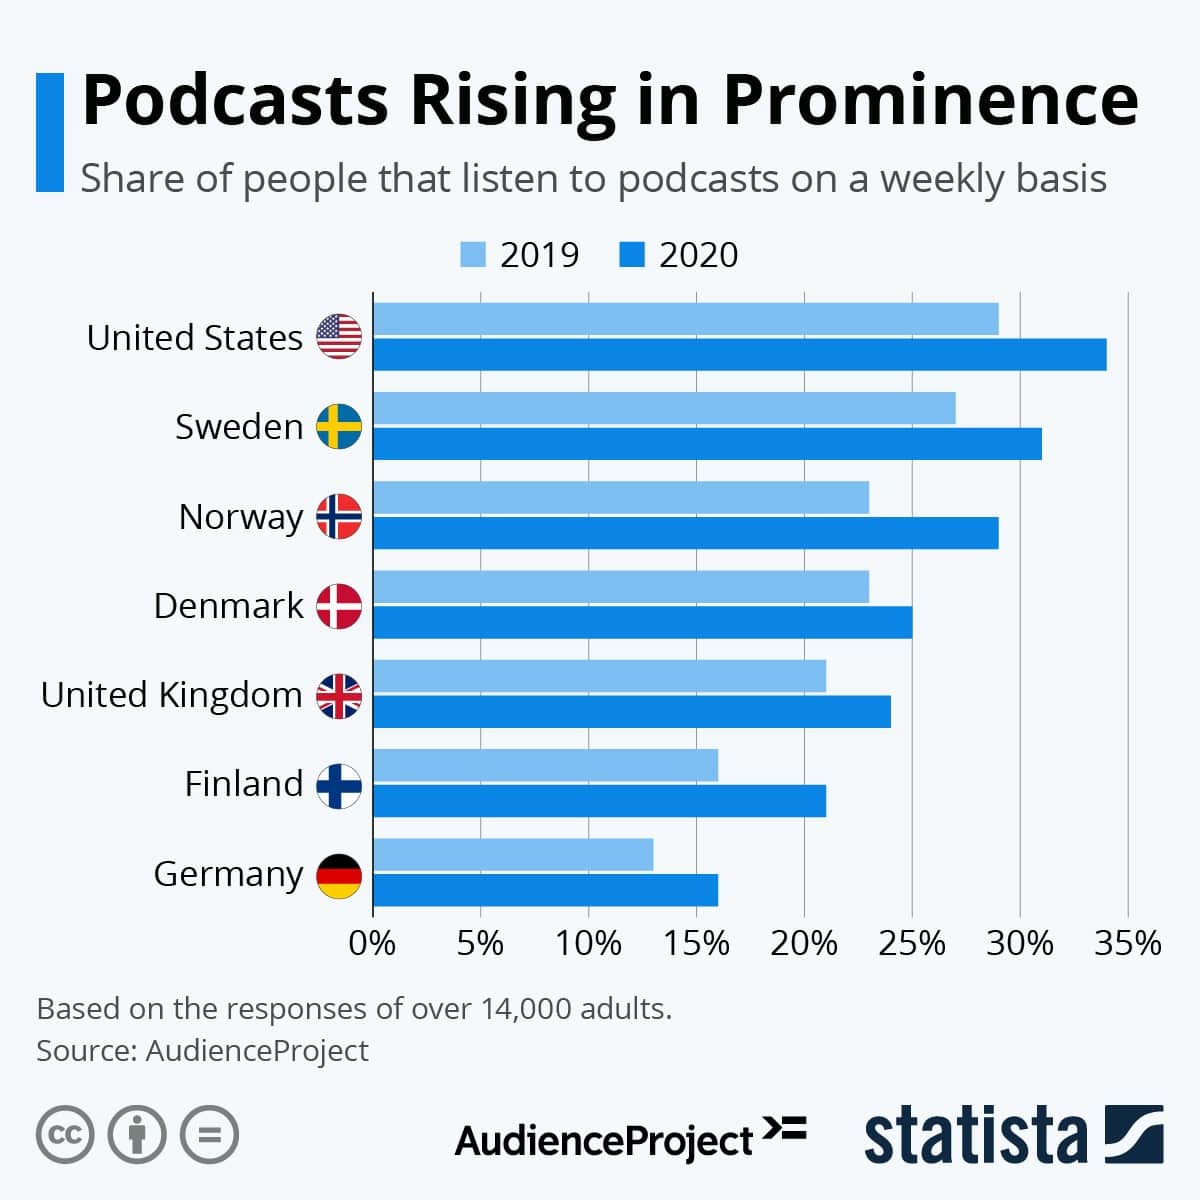 Podcasts Rising